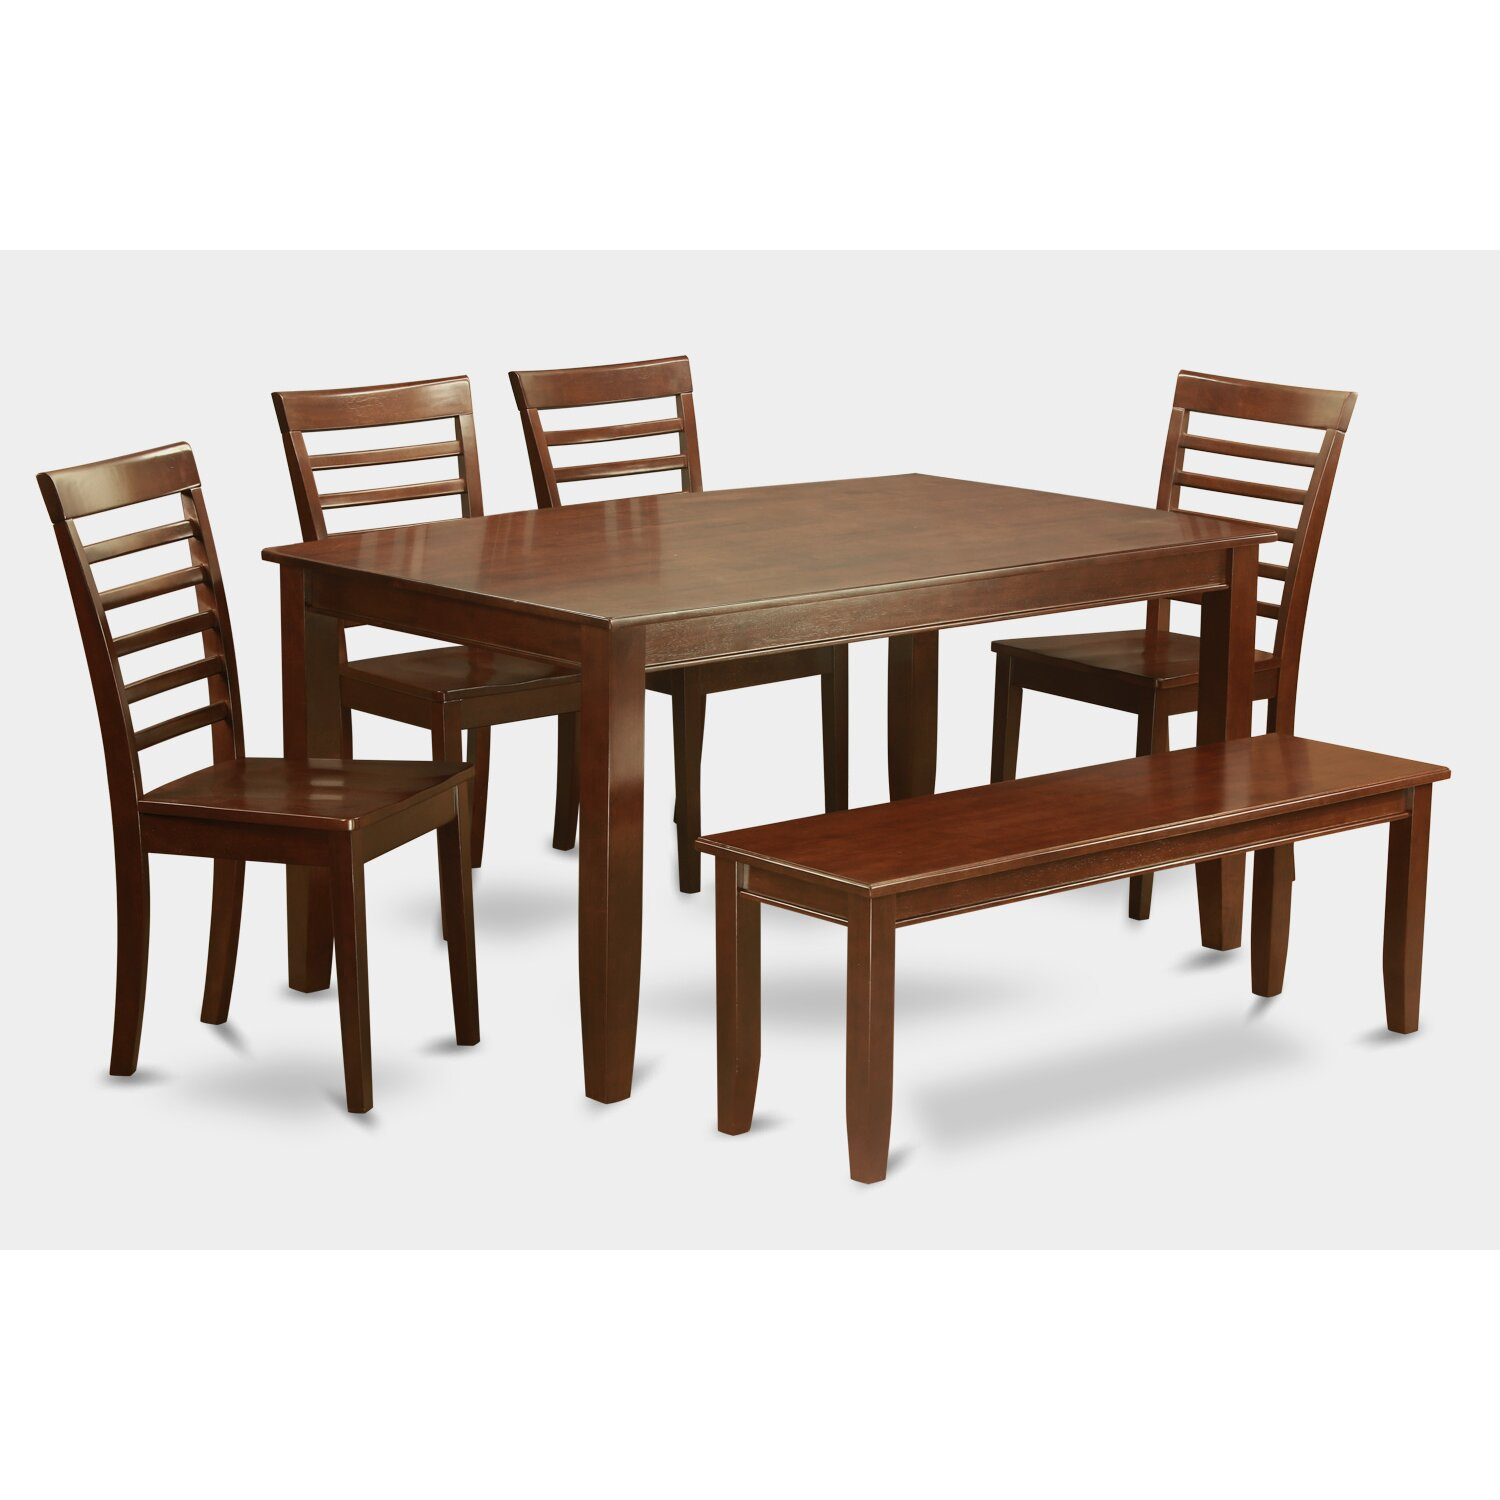 Wooden Importers 3 Piece Dining Set Reviews: Wooden Importers Dudley 6 Piece Dining Set & Reviews